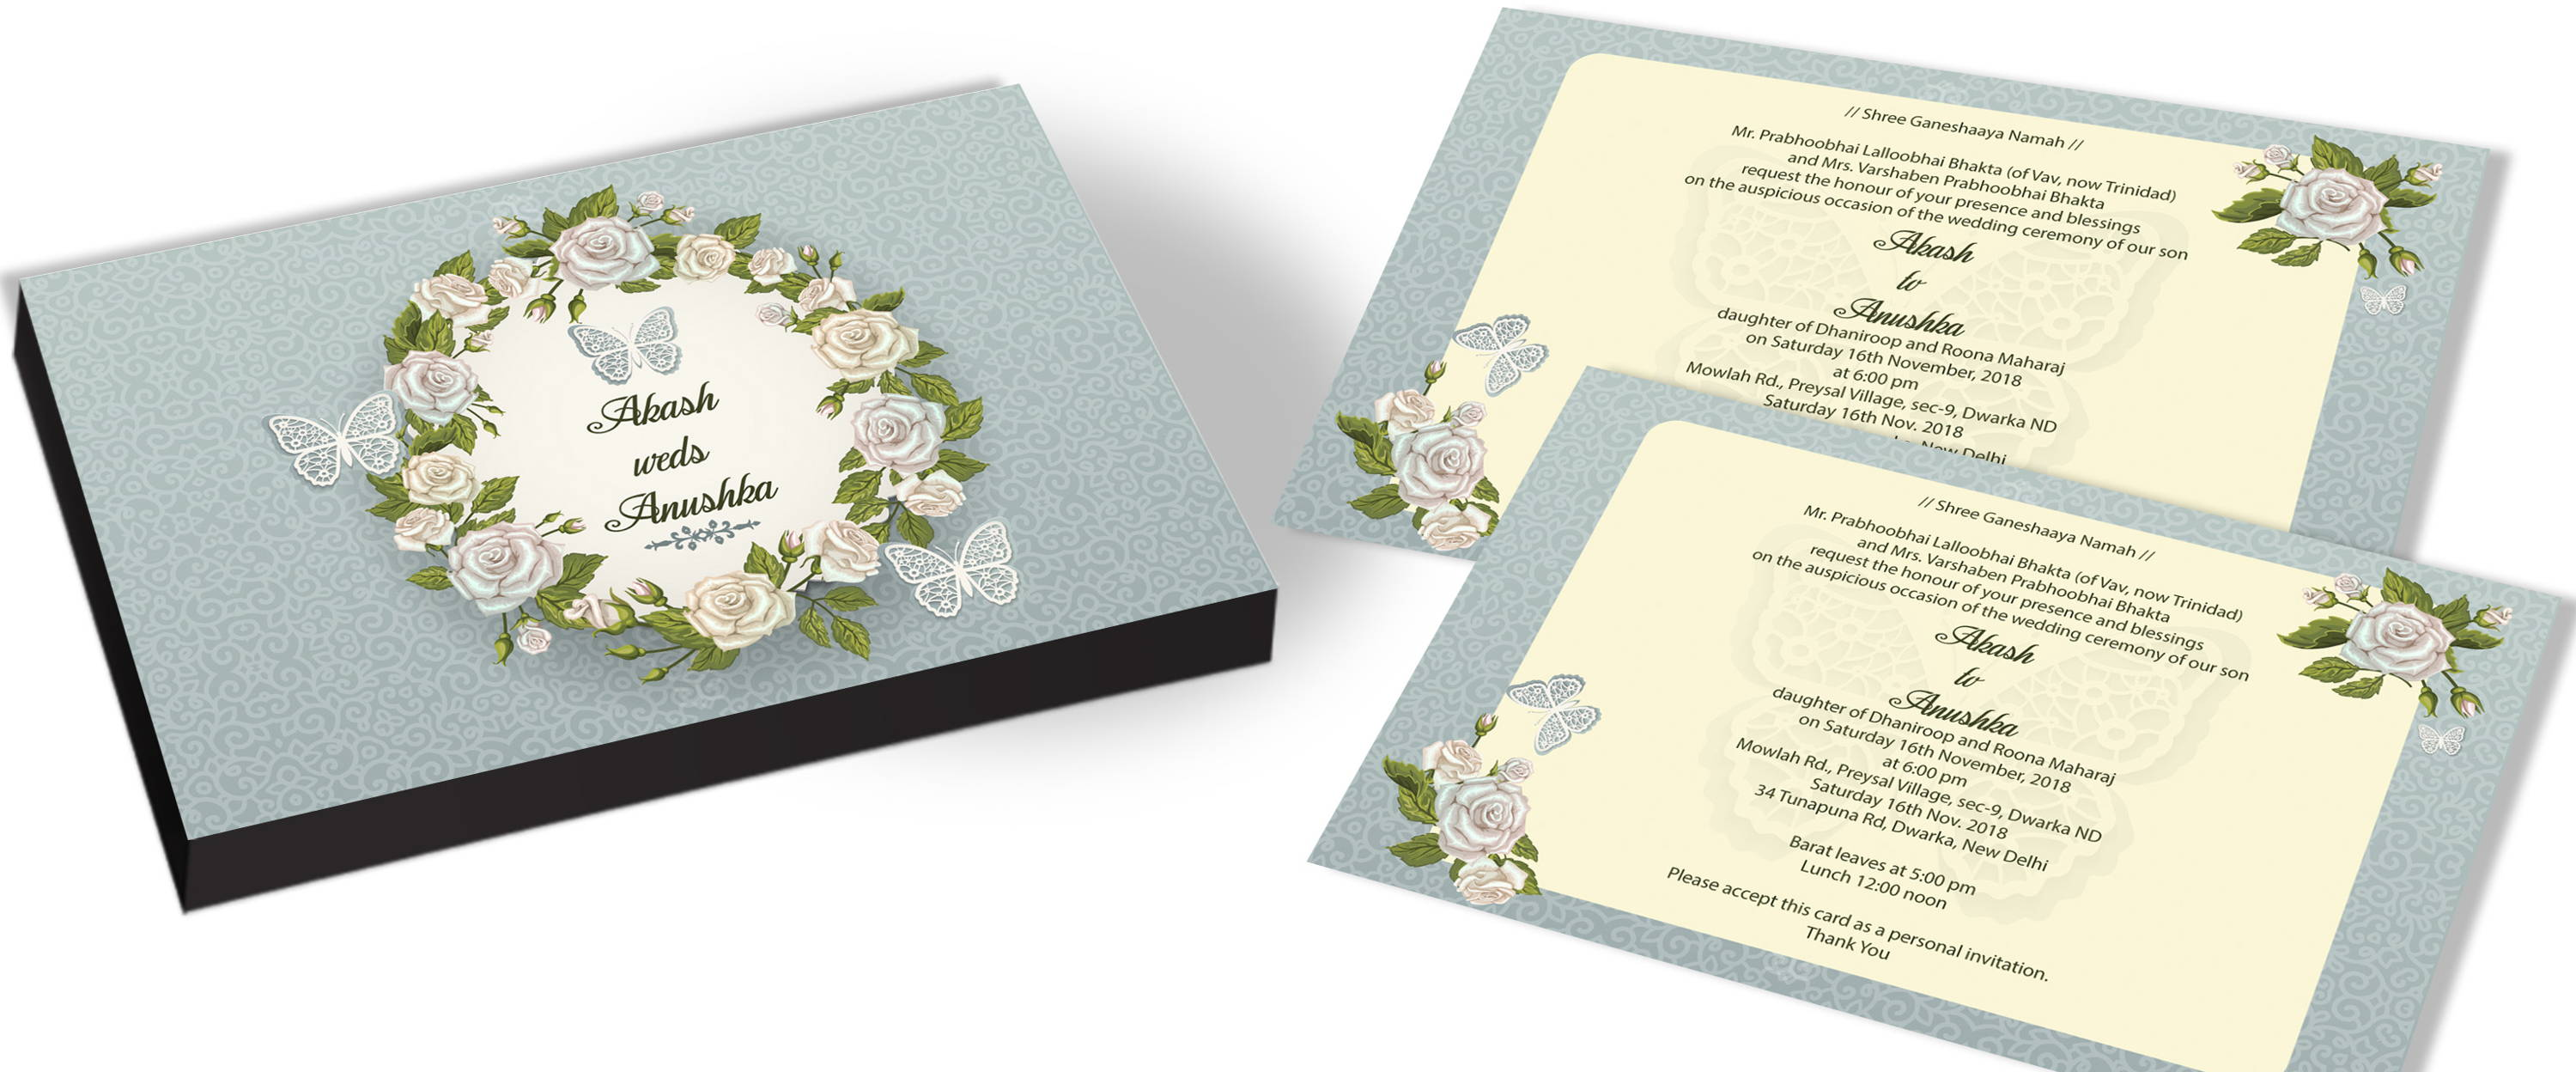 Floral Design for Wedding Invitations with Butterfly